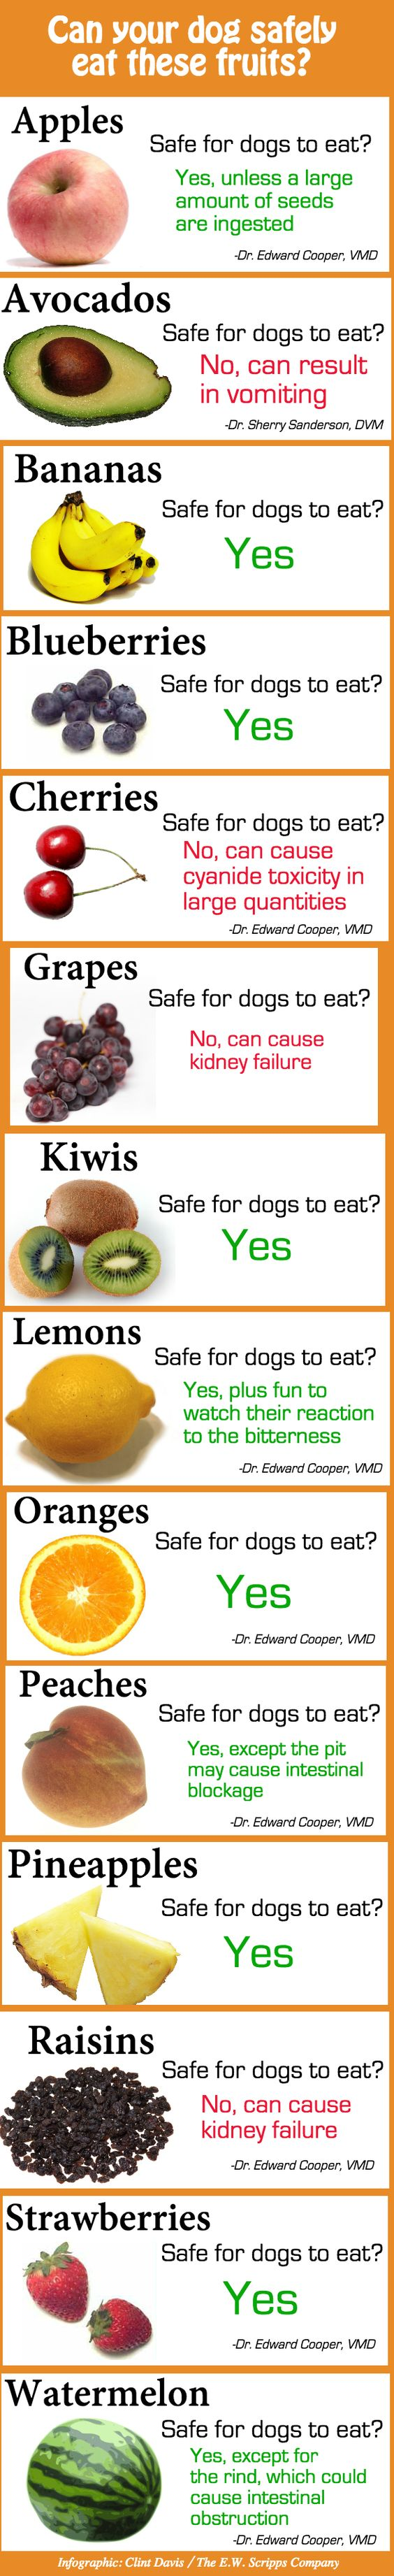 All The Fruits Safe To Share With Your Dog, In One Chart